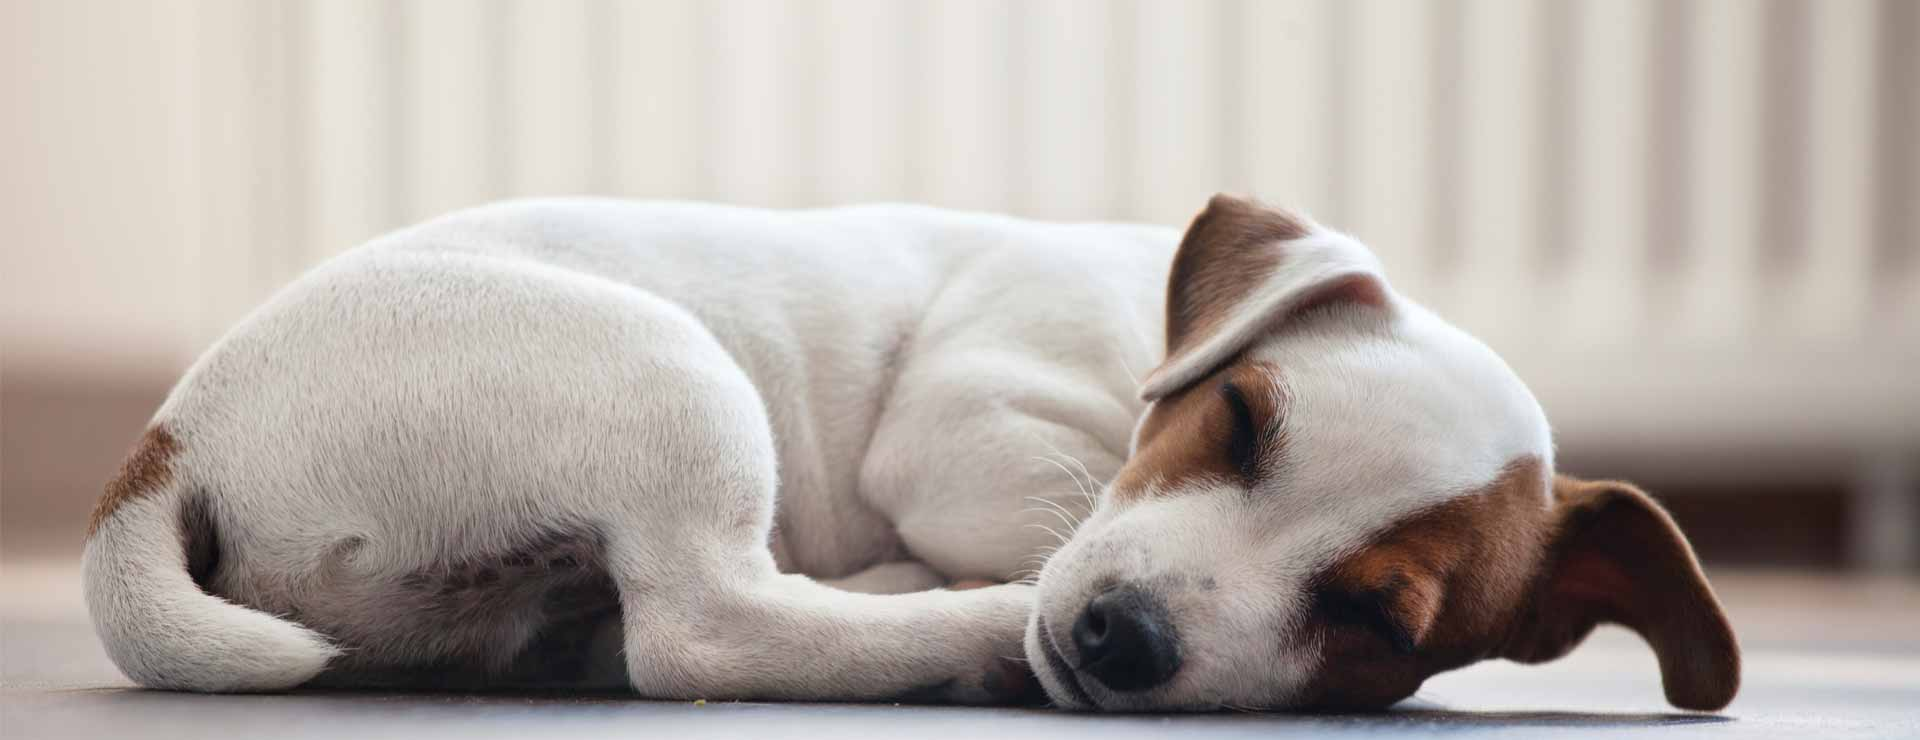 Pet Animal Dog Sleeping Details